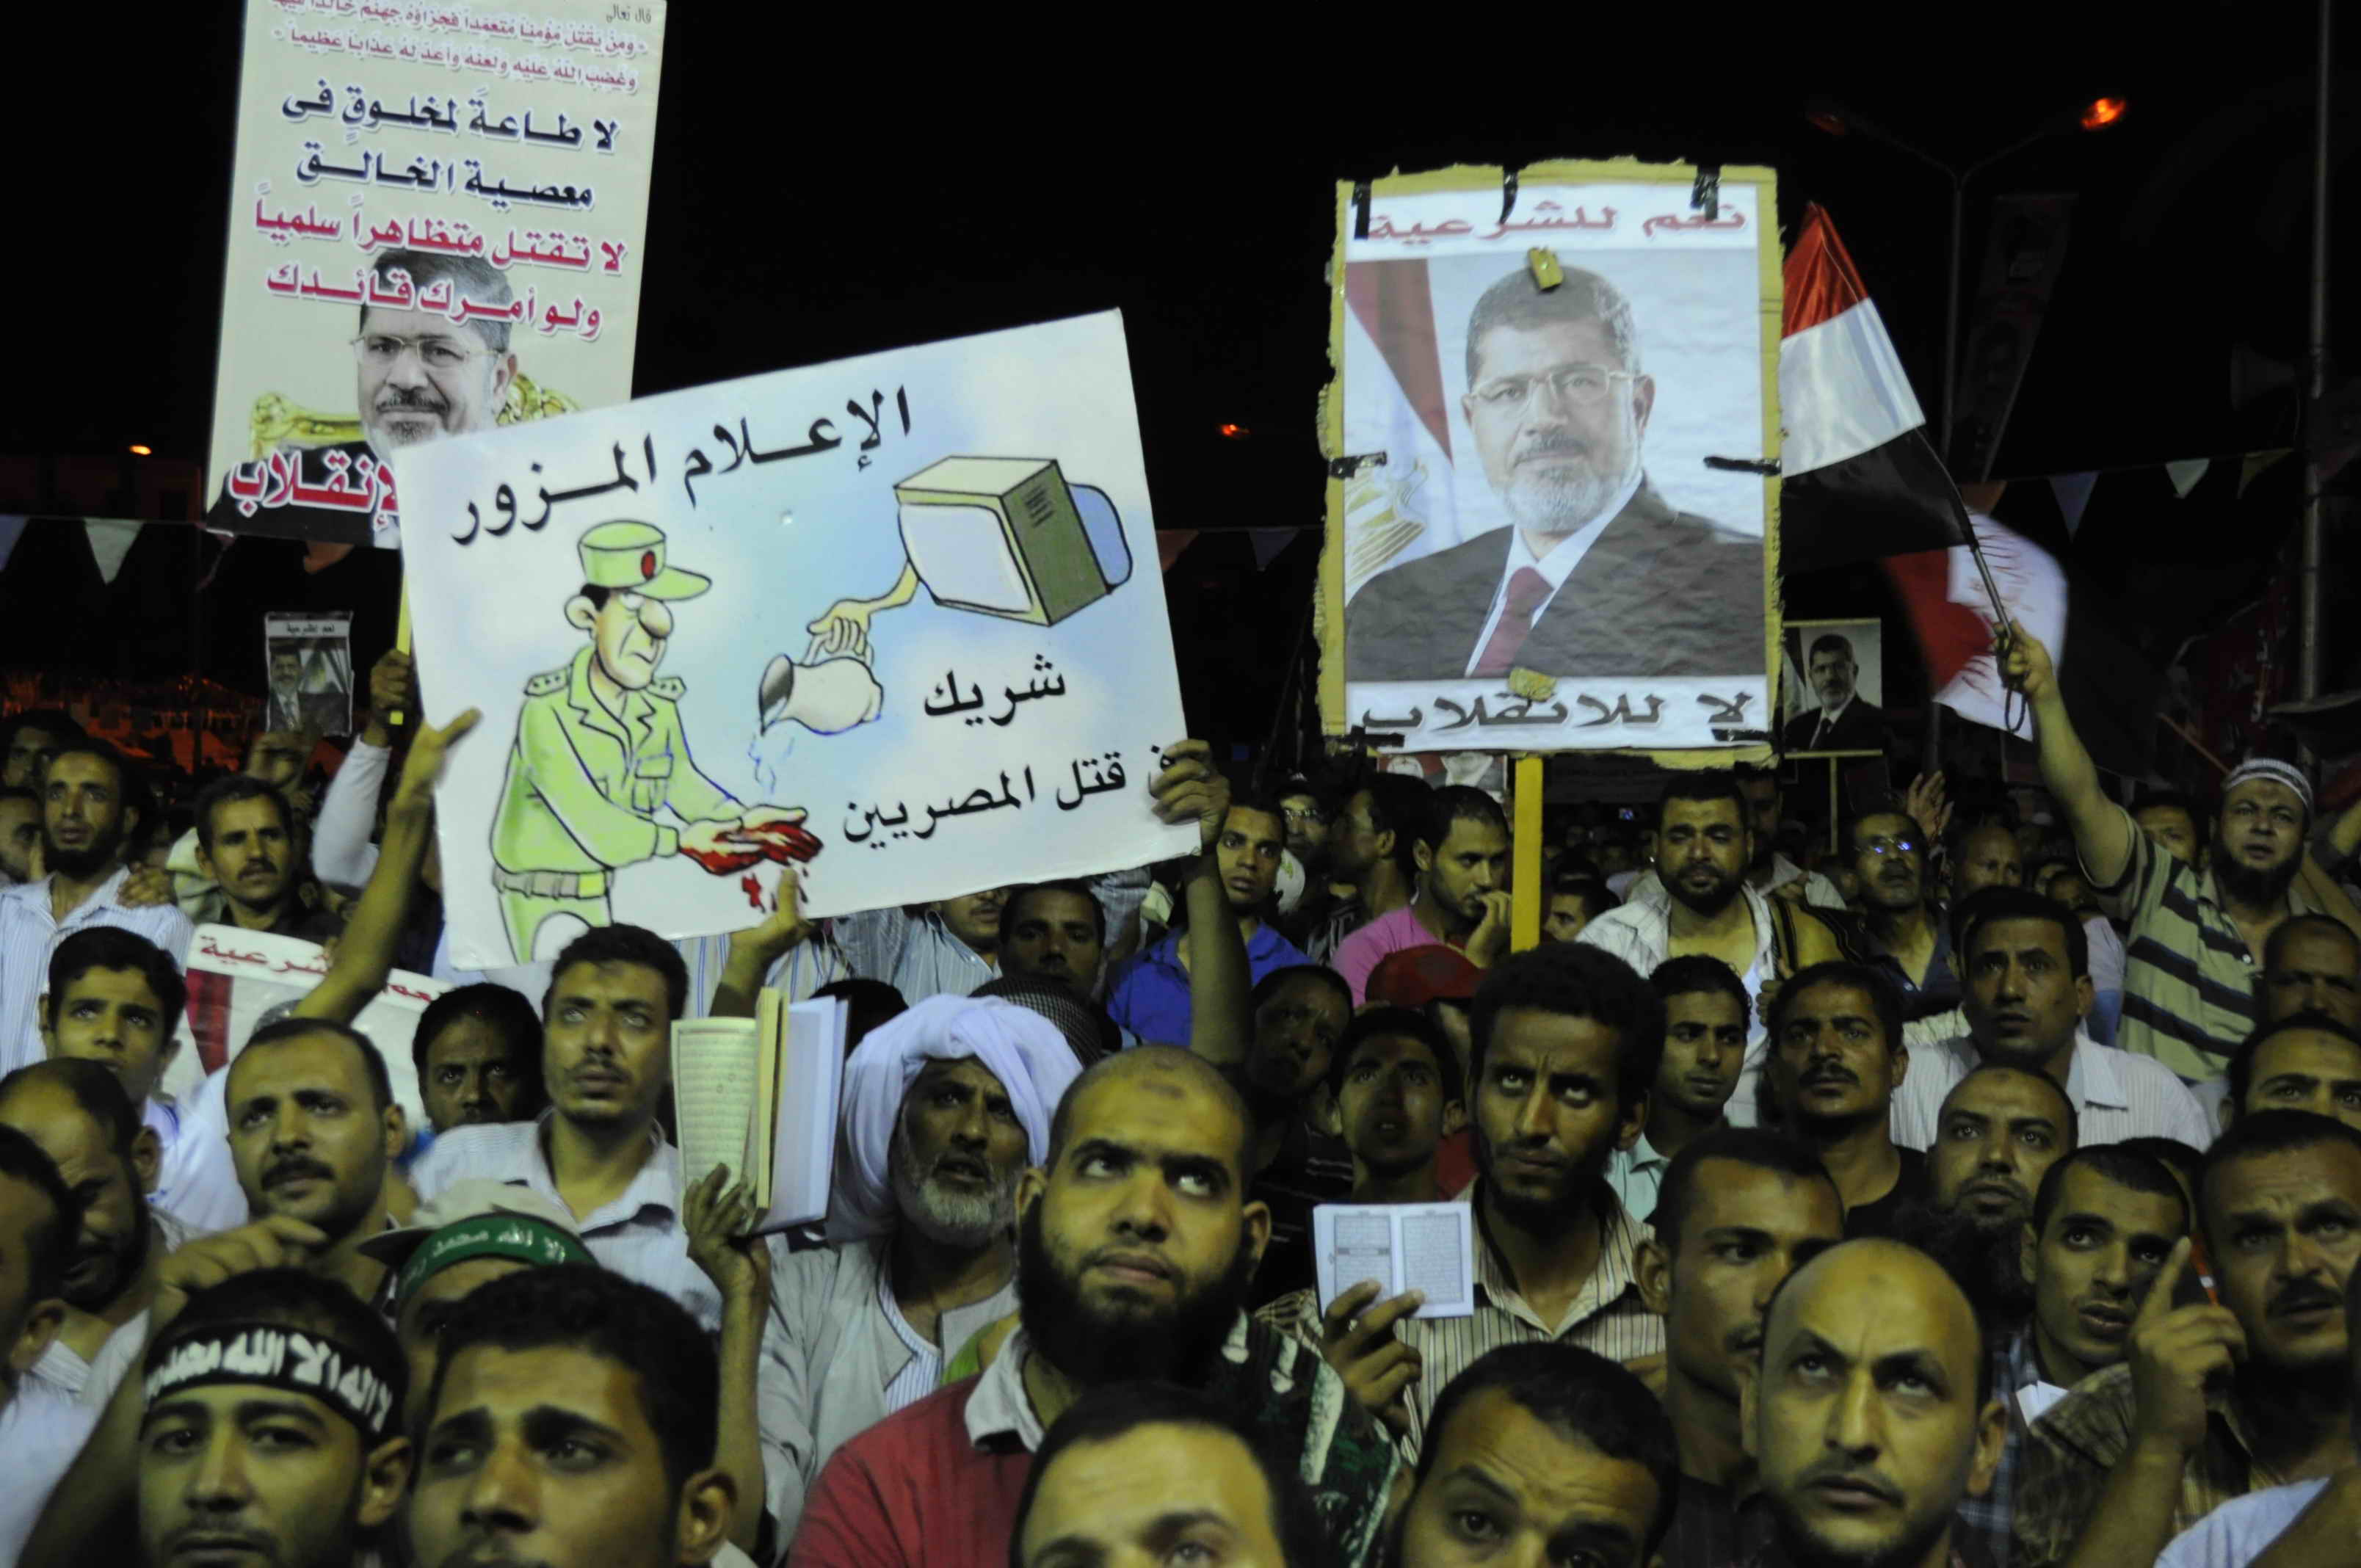 Pro Morsi sit-in at Al Nahda square on Wednesday night 31 July 2013 (Photo by Mohamed Omar/DNE)